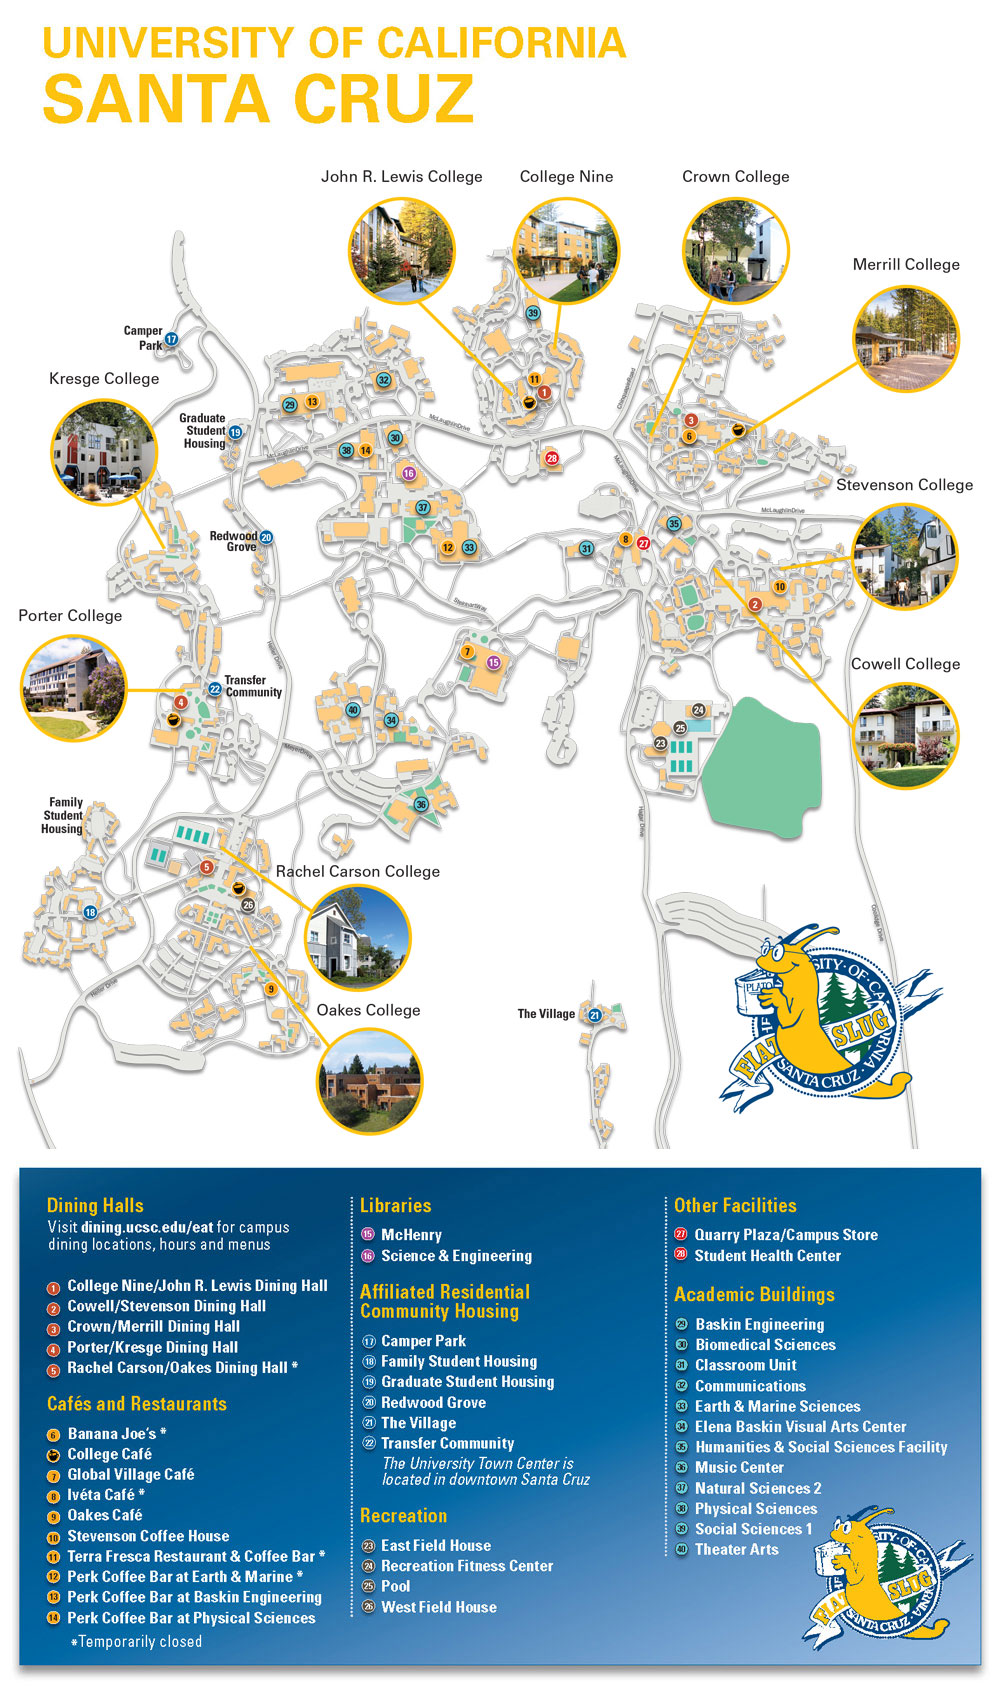 All Colleges Map on ucd campus map, berkeley campus map, scu campus map, institute hall wpi campus map, csu campus map, ucsb campus map, boston university campus map, san francisco state university campus map, brown university campus map, michigan campus map, uconn health center campus map, duke university campus map, ucsd campus map, uwo campus map, university of washington campus map, stanford university campus map, nfcc campus map, usd campus map, 3d campus map, uc campus map,